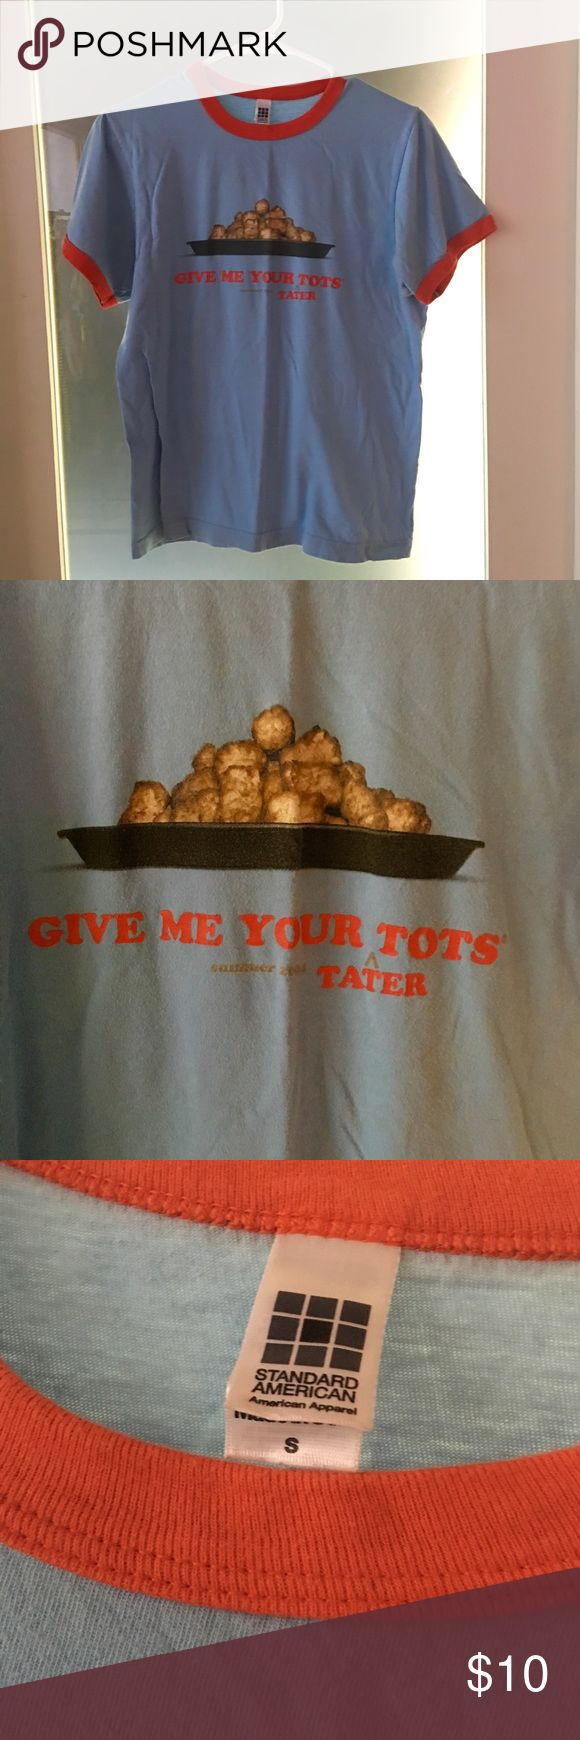 """Napoleon Dynamite Tots Crew Neck Tee Napoleon Dynamite """"Gimme your {tater} tots"""" crew neck short sleeve tee. Promotional product from the film, says """"Summer 2004"""" under the front text. Light blue shirt with orange on edges of neck and sleeves. Front has photo of tots with """"Gimme your tater tots"""" written under it (tater is being inserted before tots, since Napoleon simply called them tots).  Back says """"Napoleon Dynamite"""".  Size is a men's small, so closer to a loose women's medium or tight…"""